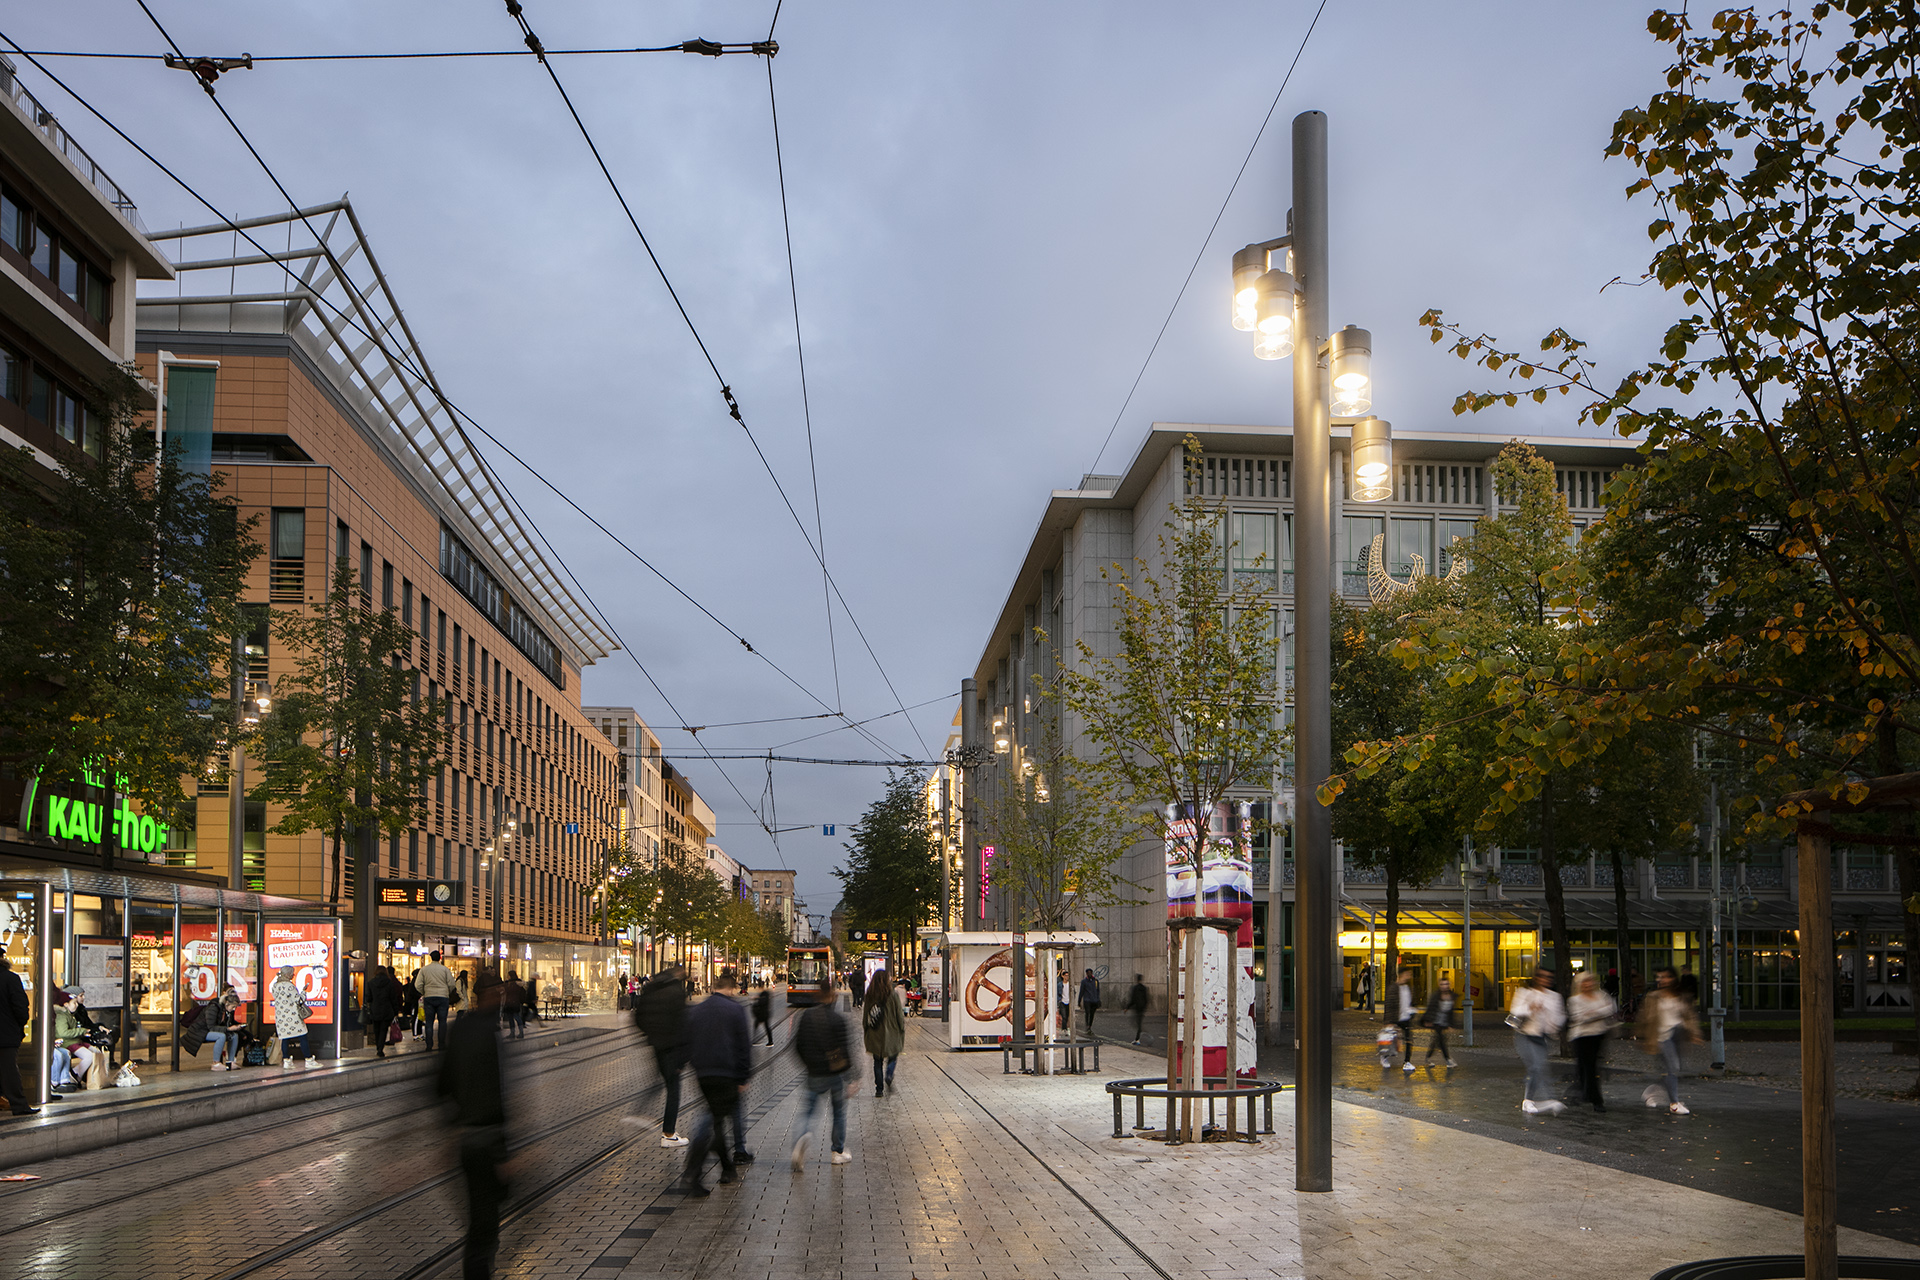 Customised luminaires deliver a warm white light on the Planken to welcome and encourage people to shop into the night